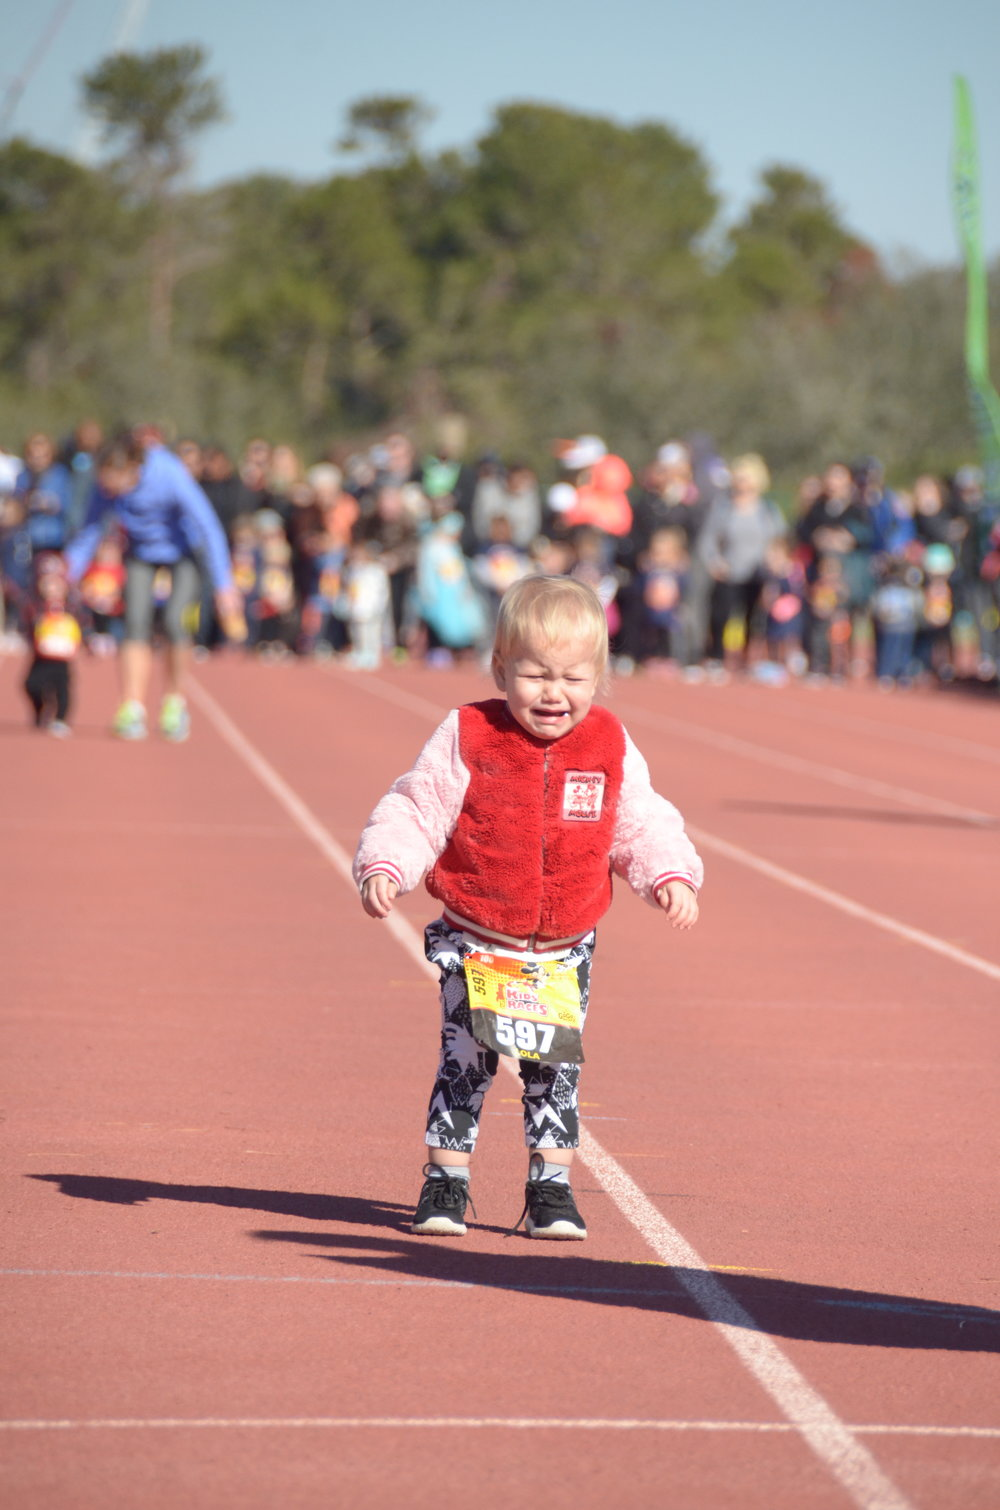 When my daughter is in the Olympics I'll remind her of her first race.